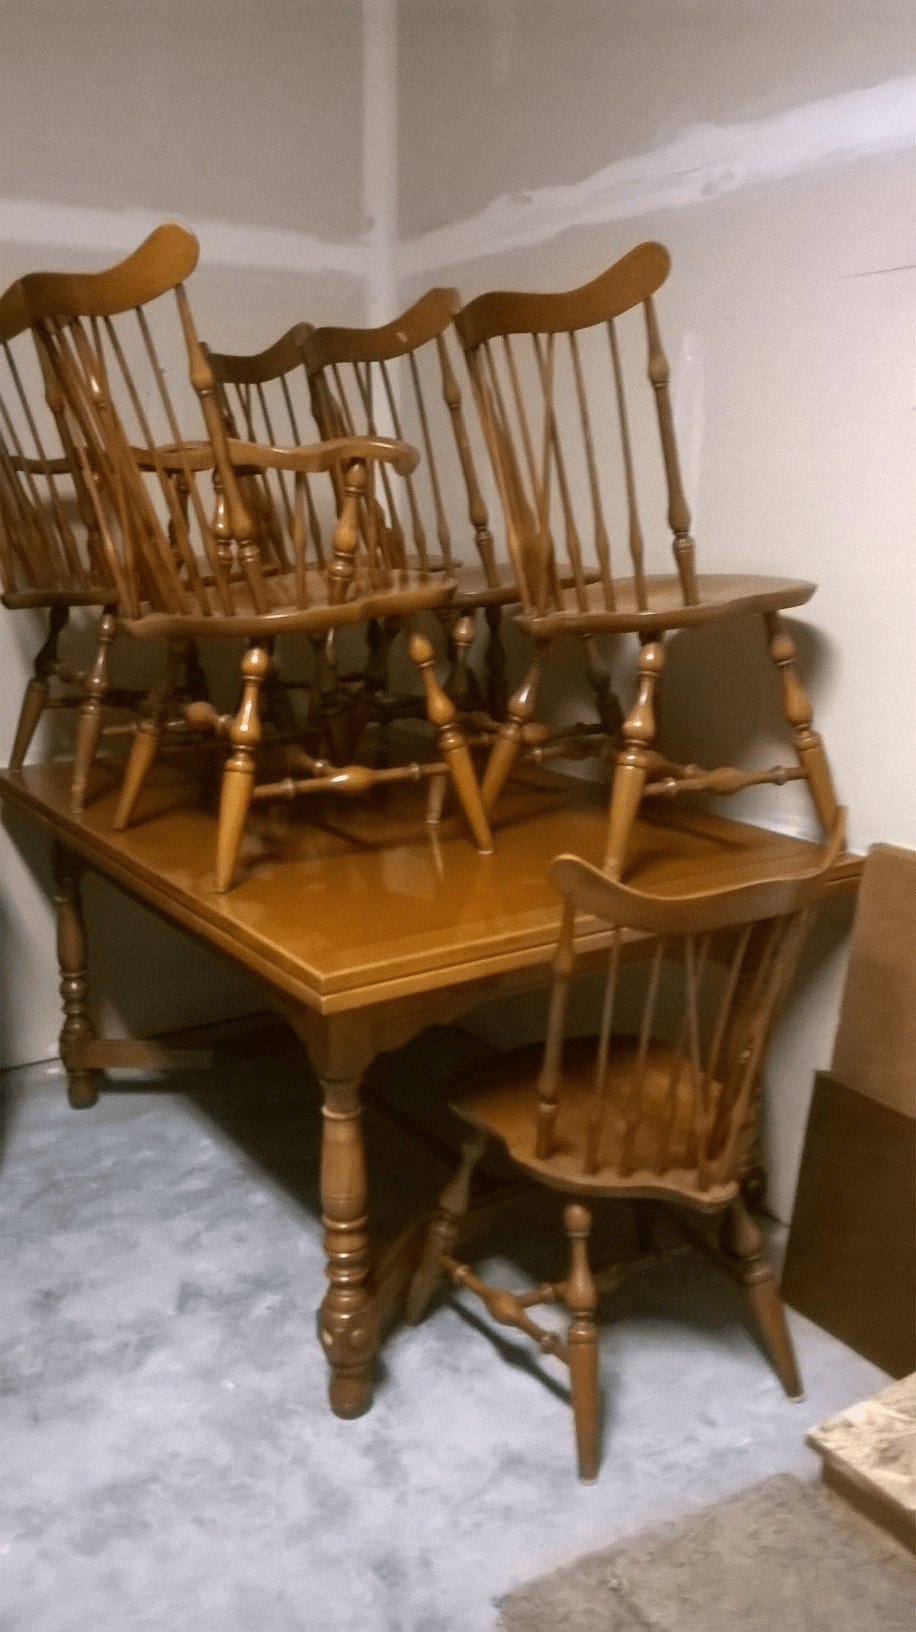 1950s Maple Dining Room Set With Hutch For Sale Classifieds